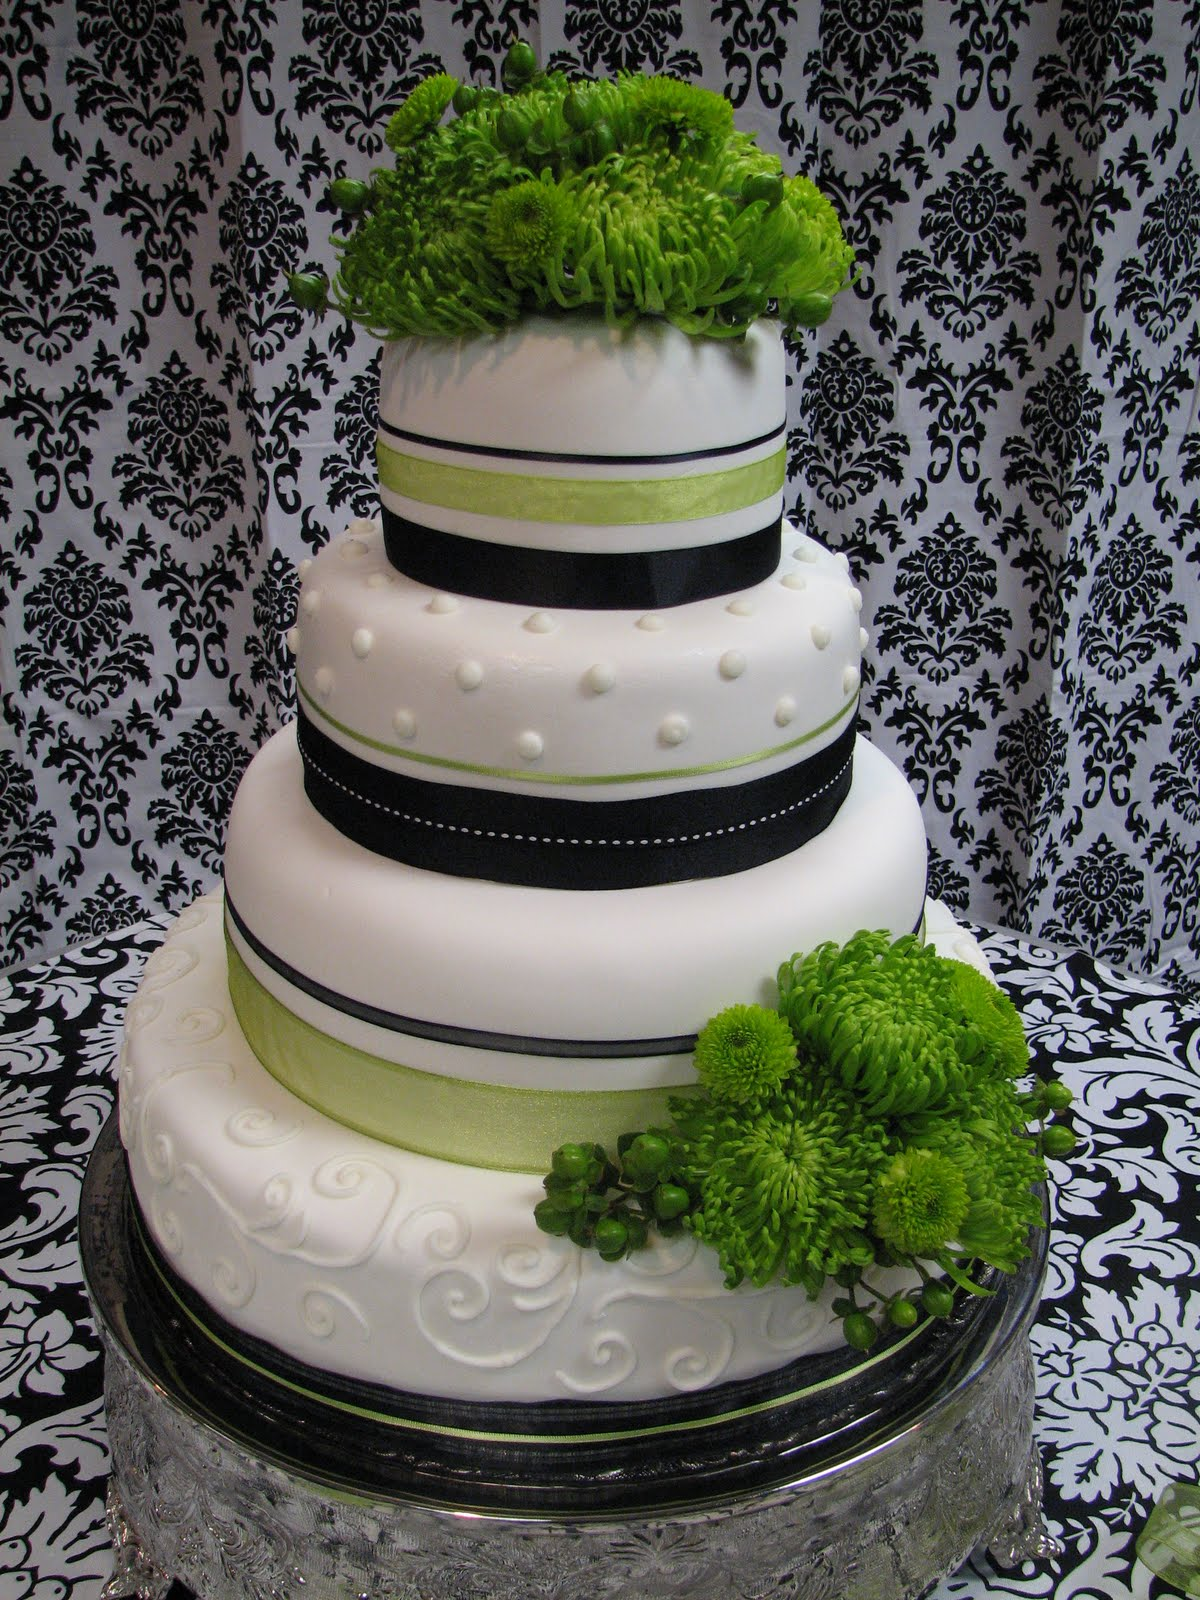 Decadent Designs Black White and Apple Green Wedding cake